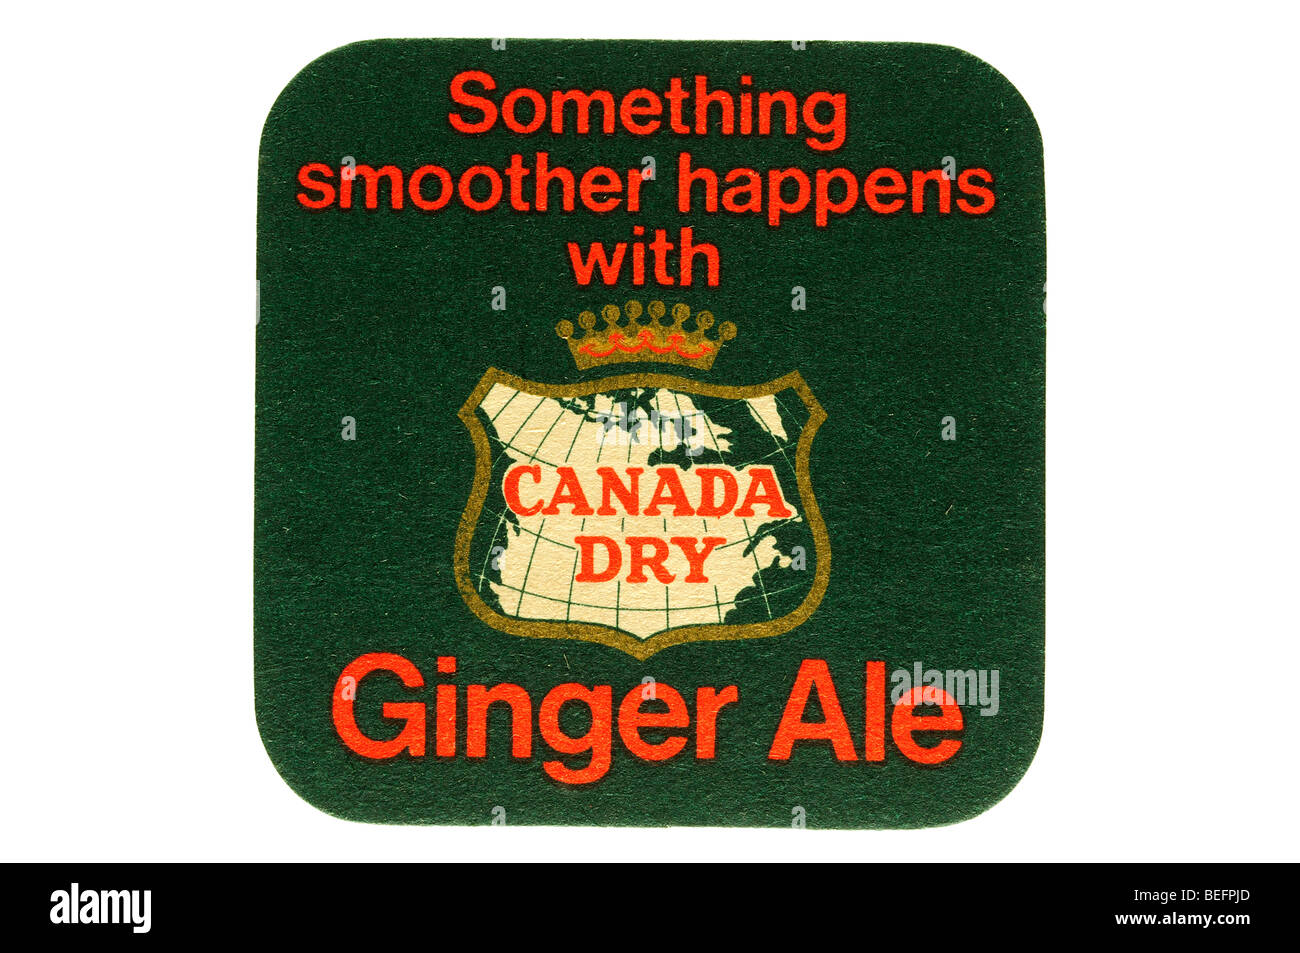 something smother happens with canada dry ginger ale - Stock Image